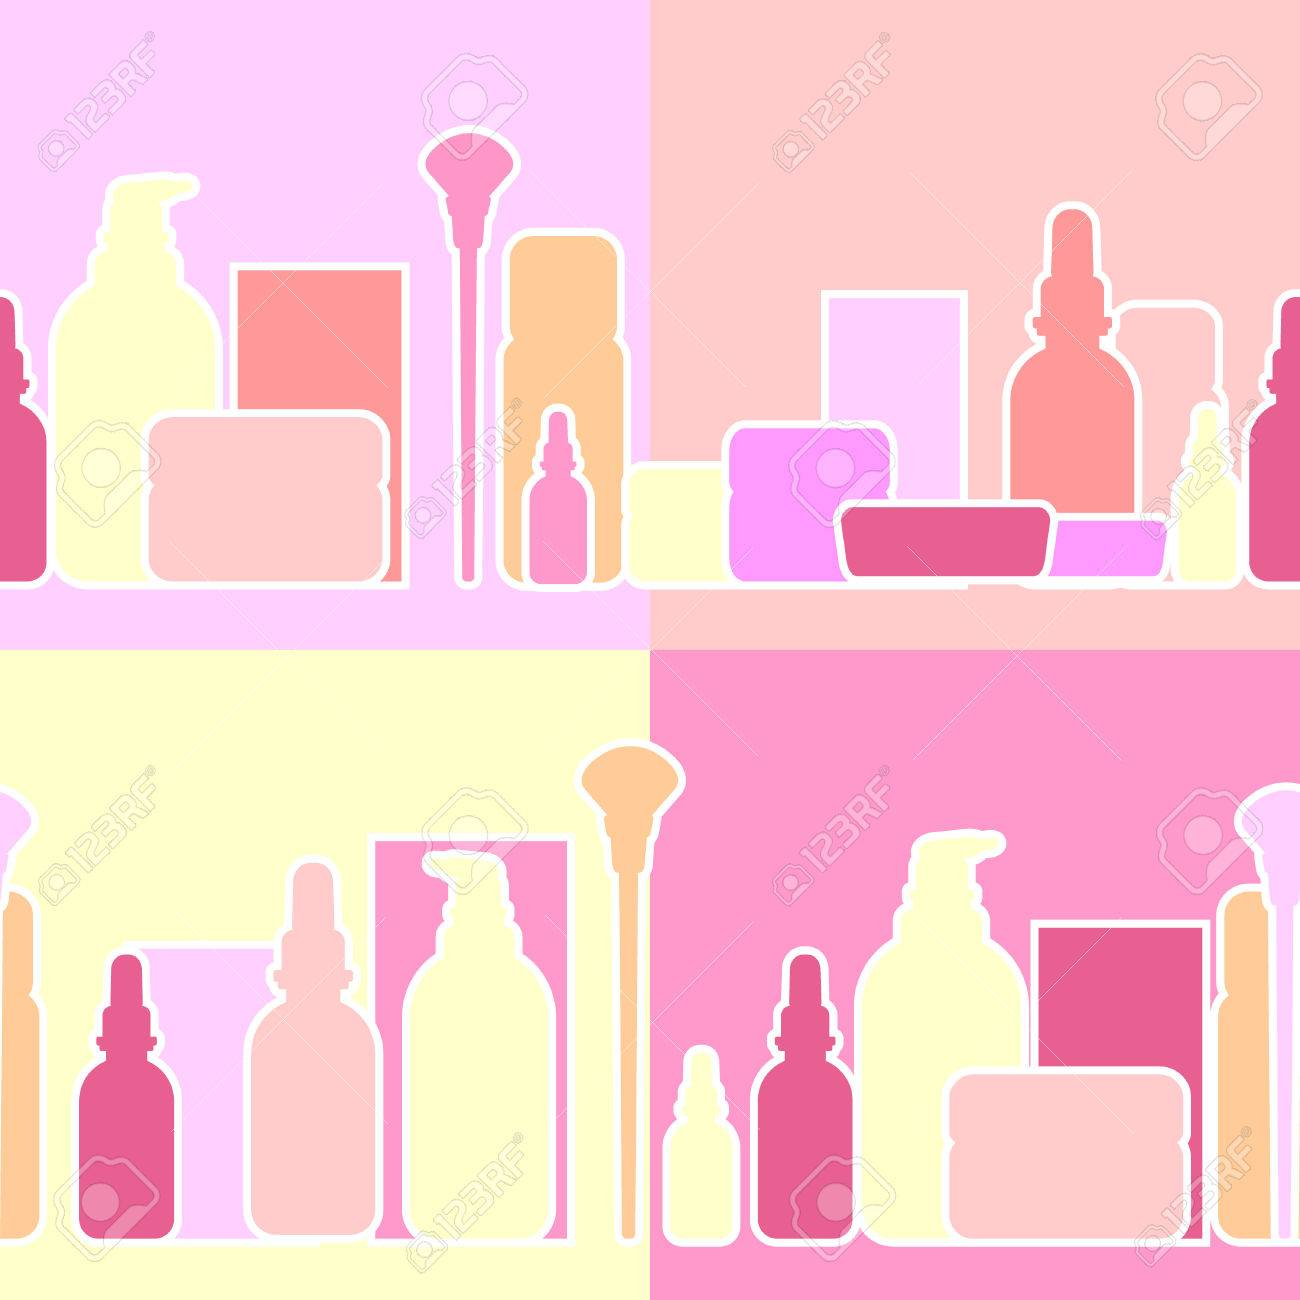 Bottles and creams for the beauty industry, vector illustration,